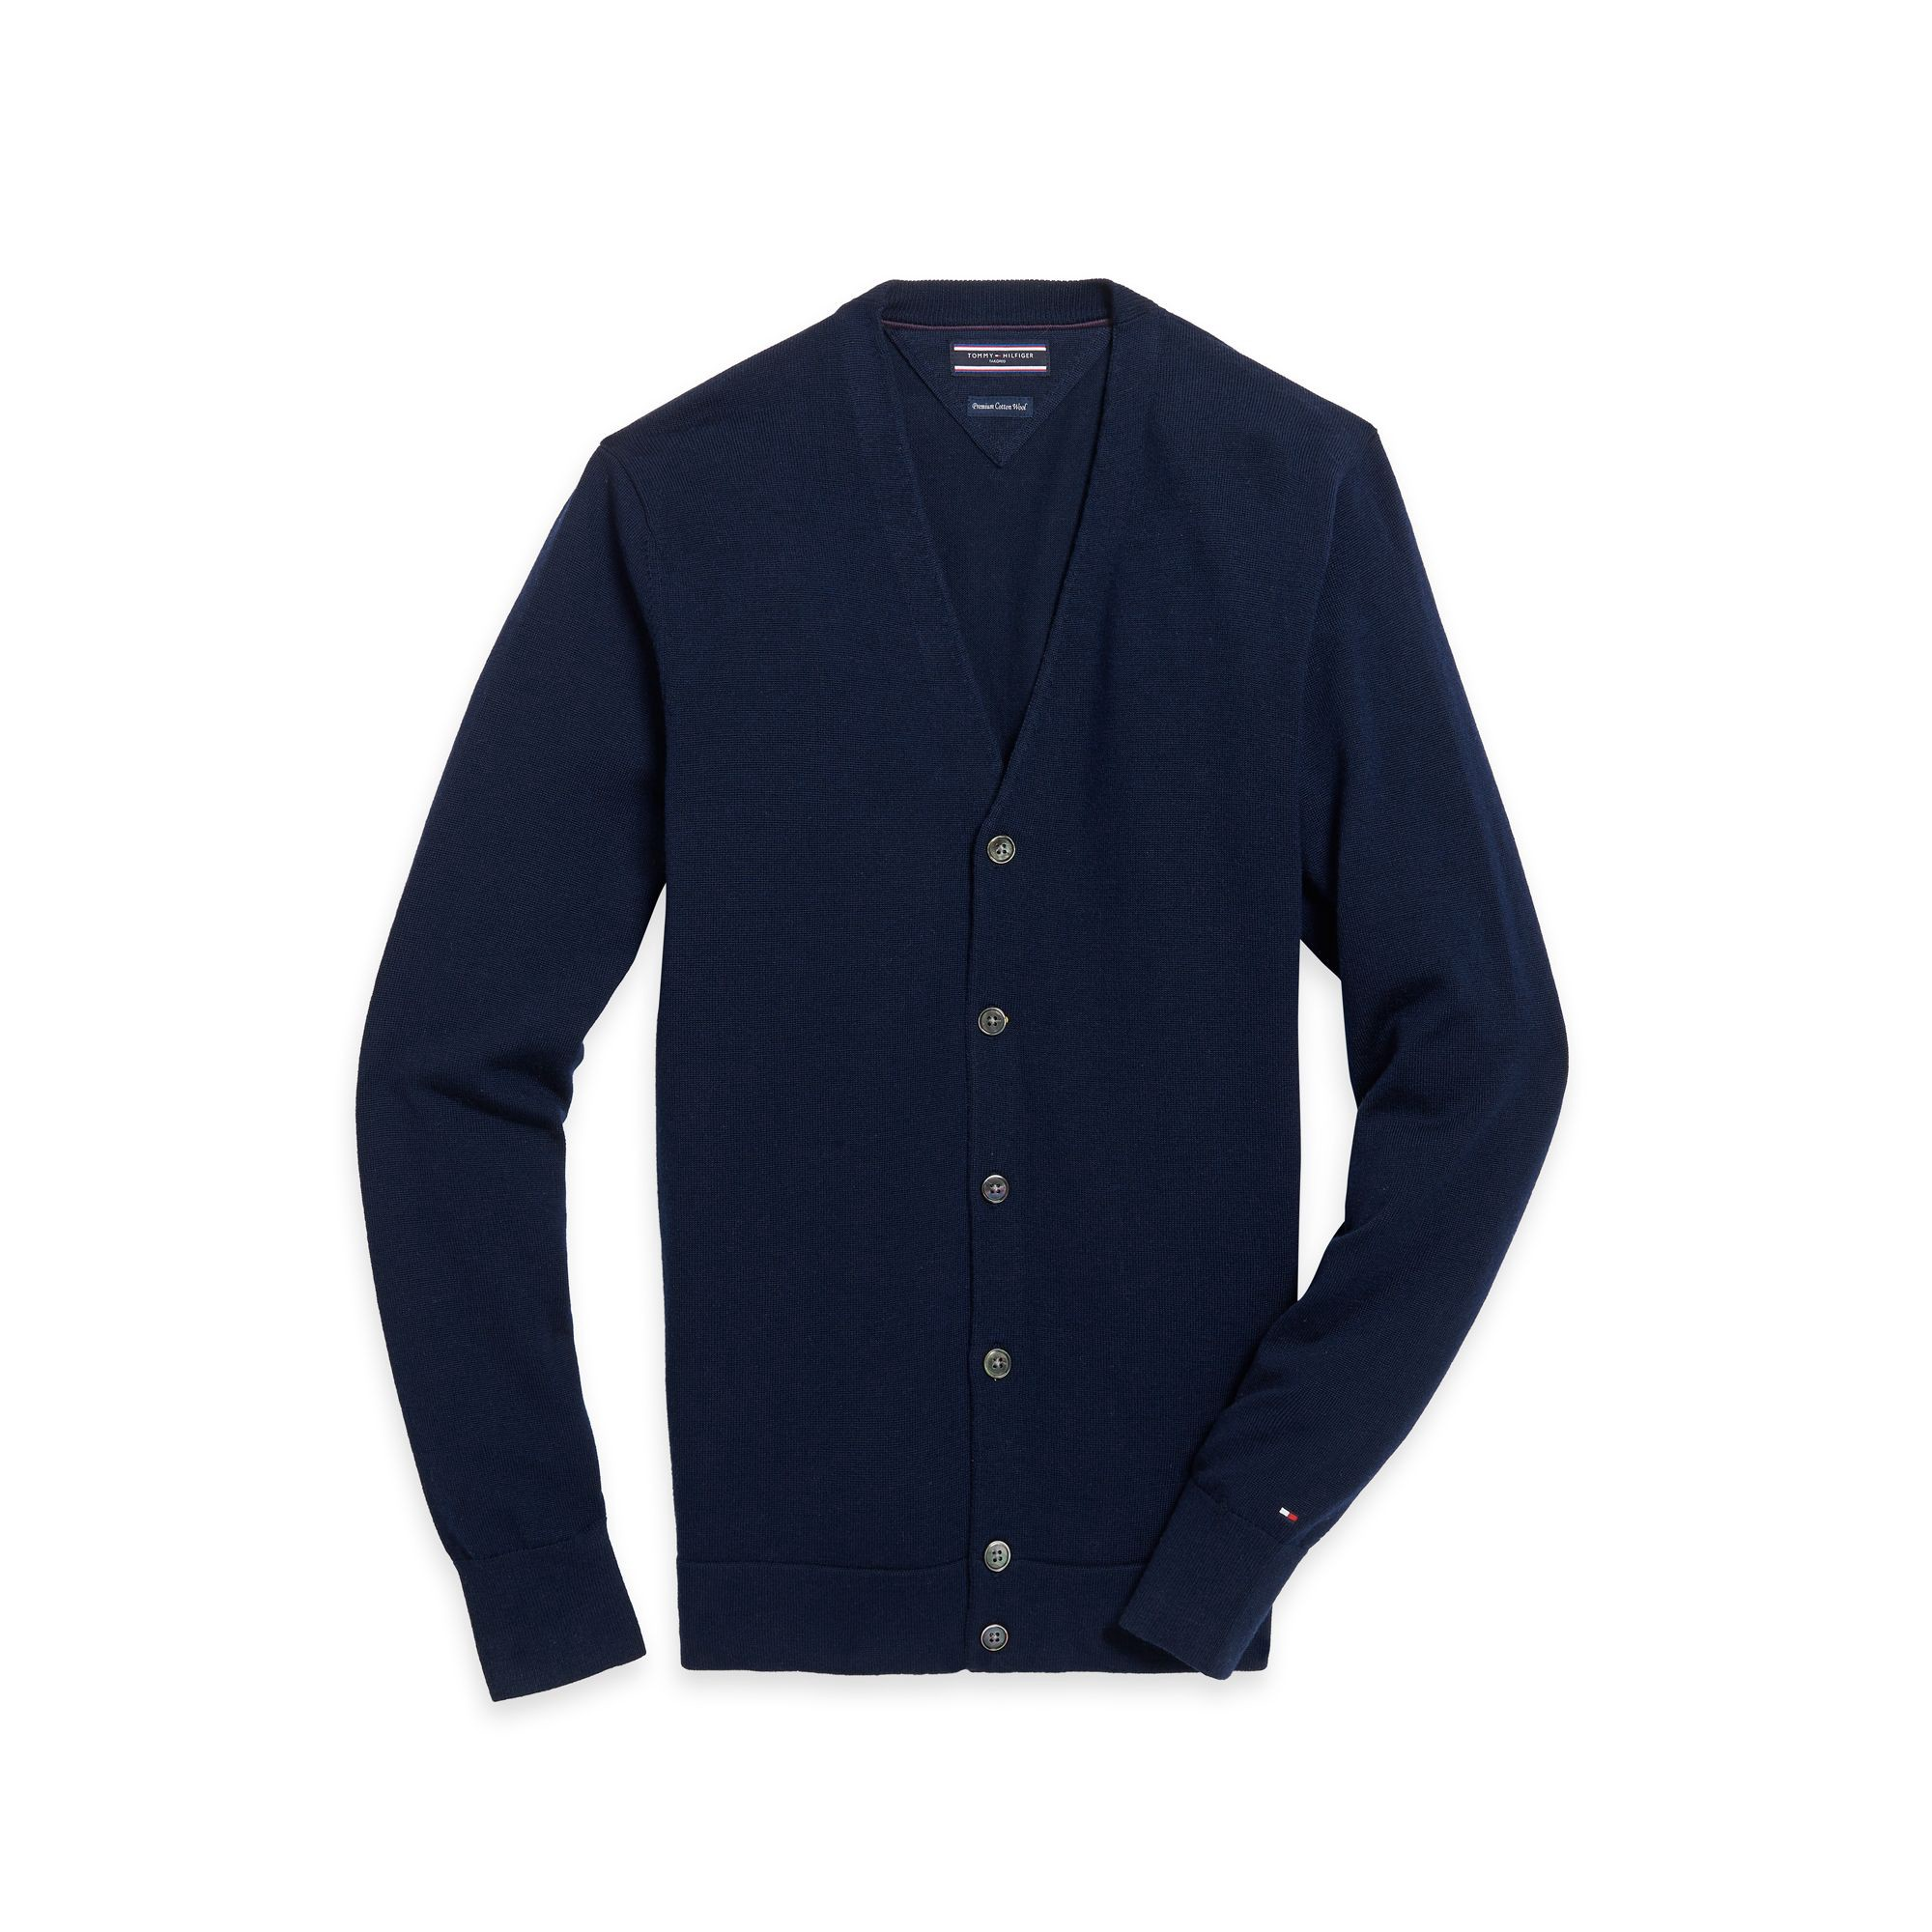 TOMMY HILFIGER Tailored Collection Wool Cardigan - Midnight